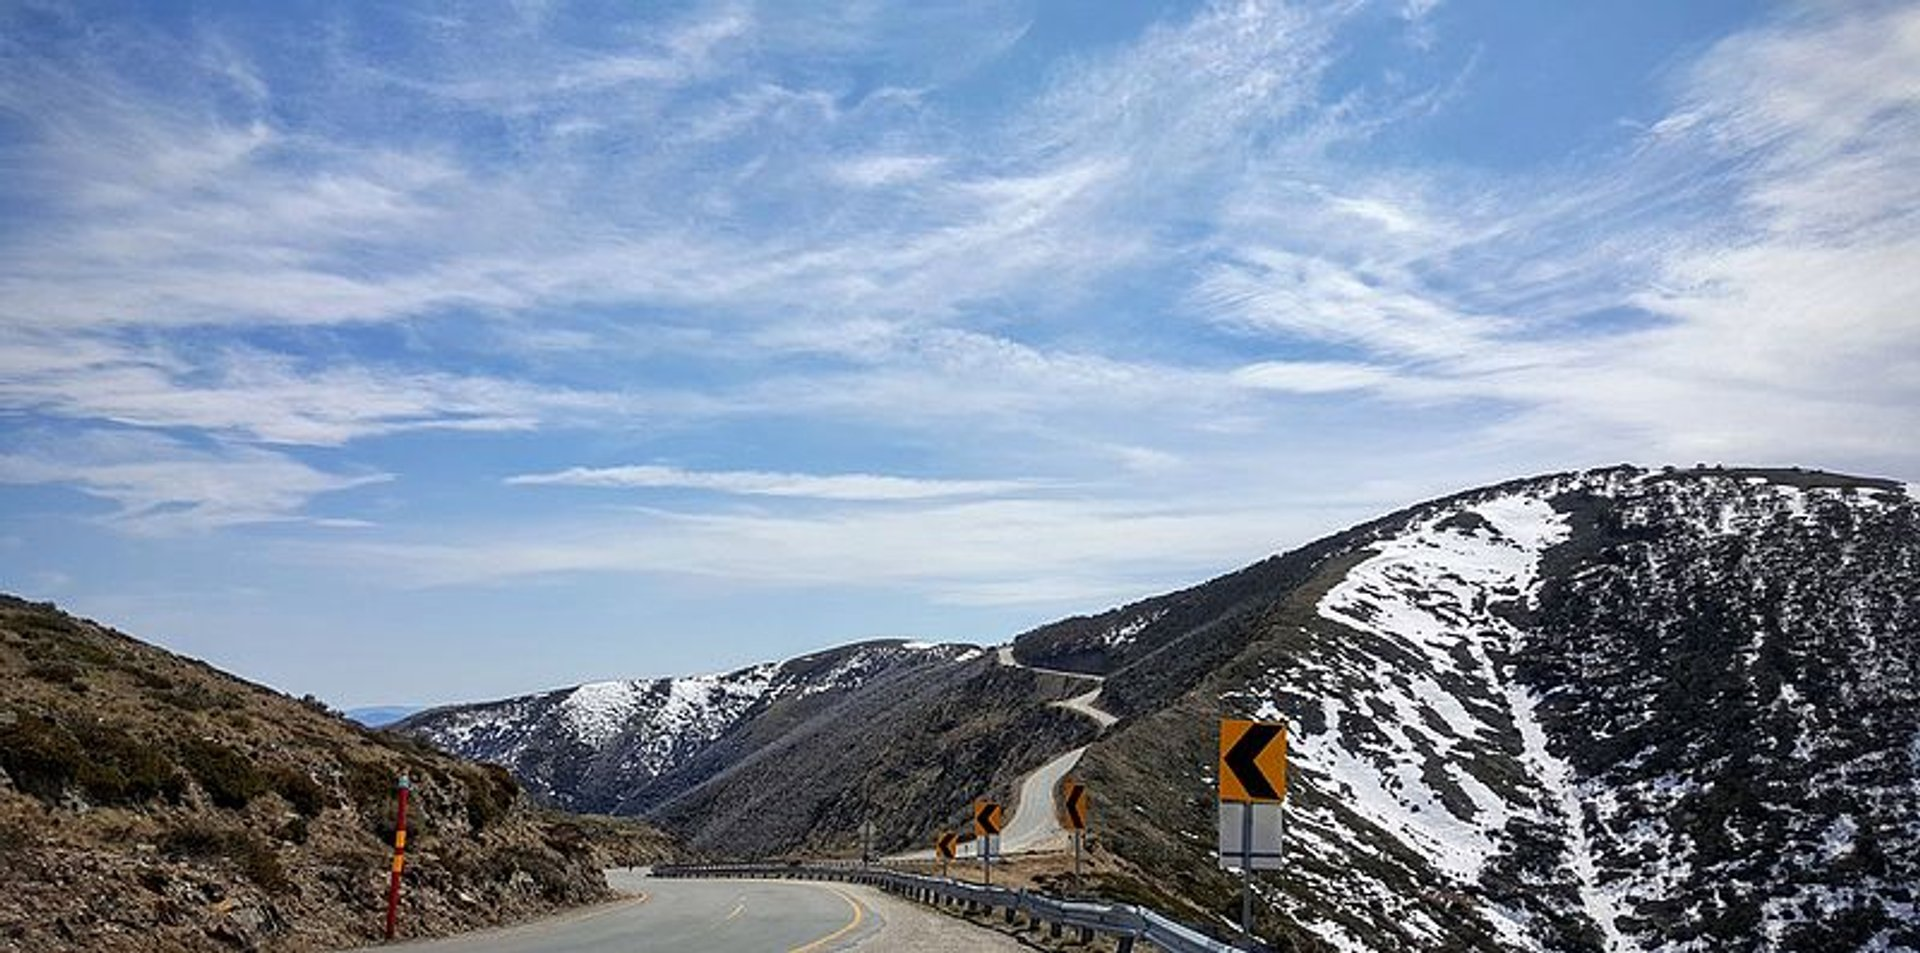 Great Alpine Road in Victoria 2020 - Best Time